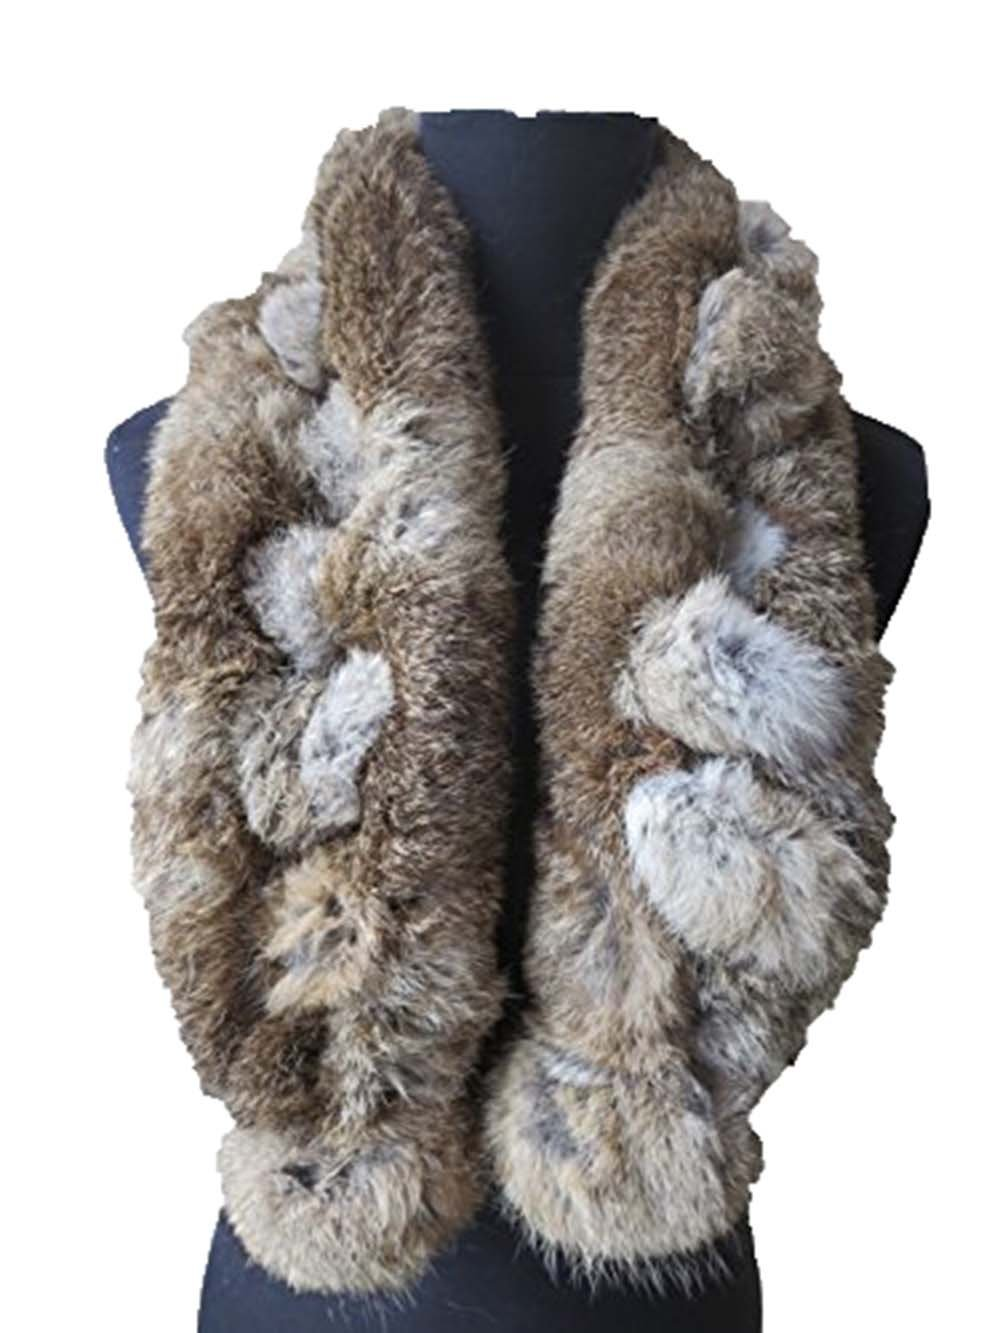 Real Rabbit Fur Scarf Warm Wearing Convenient Multiple Color Options (natural brown)